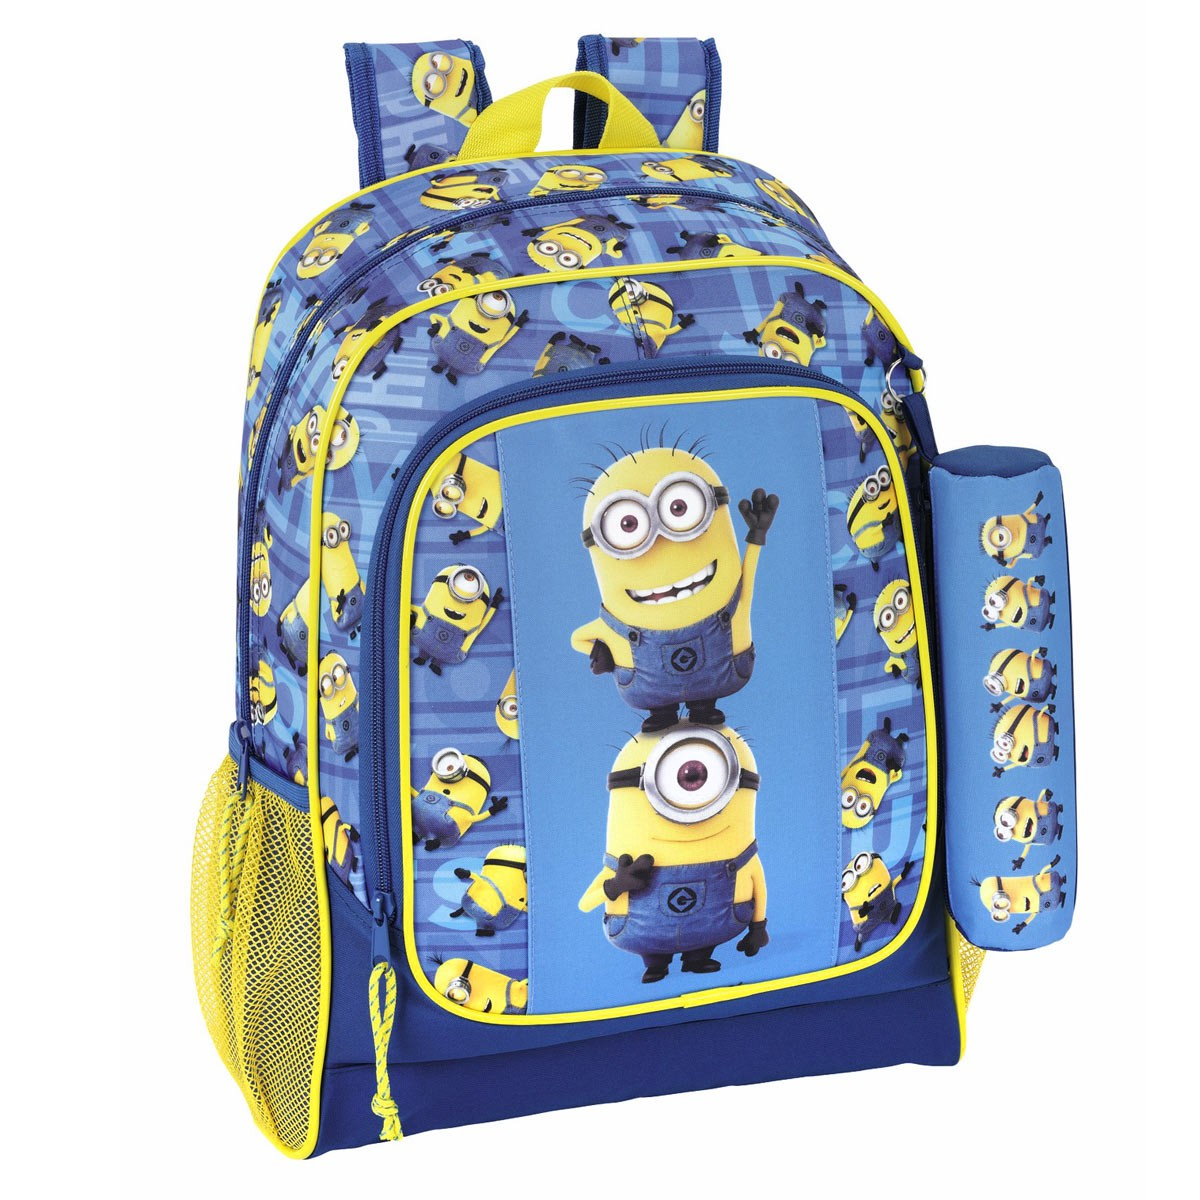 Minions Blue Large Backpack + Pencil Case – image 1